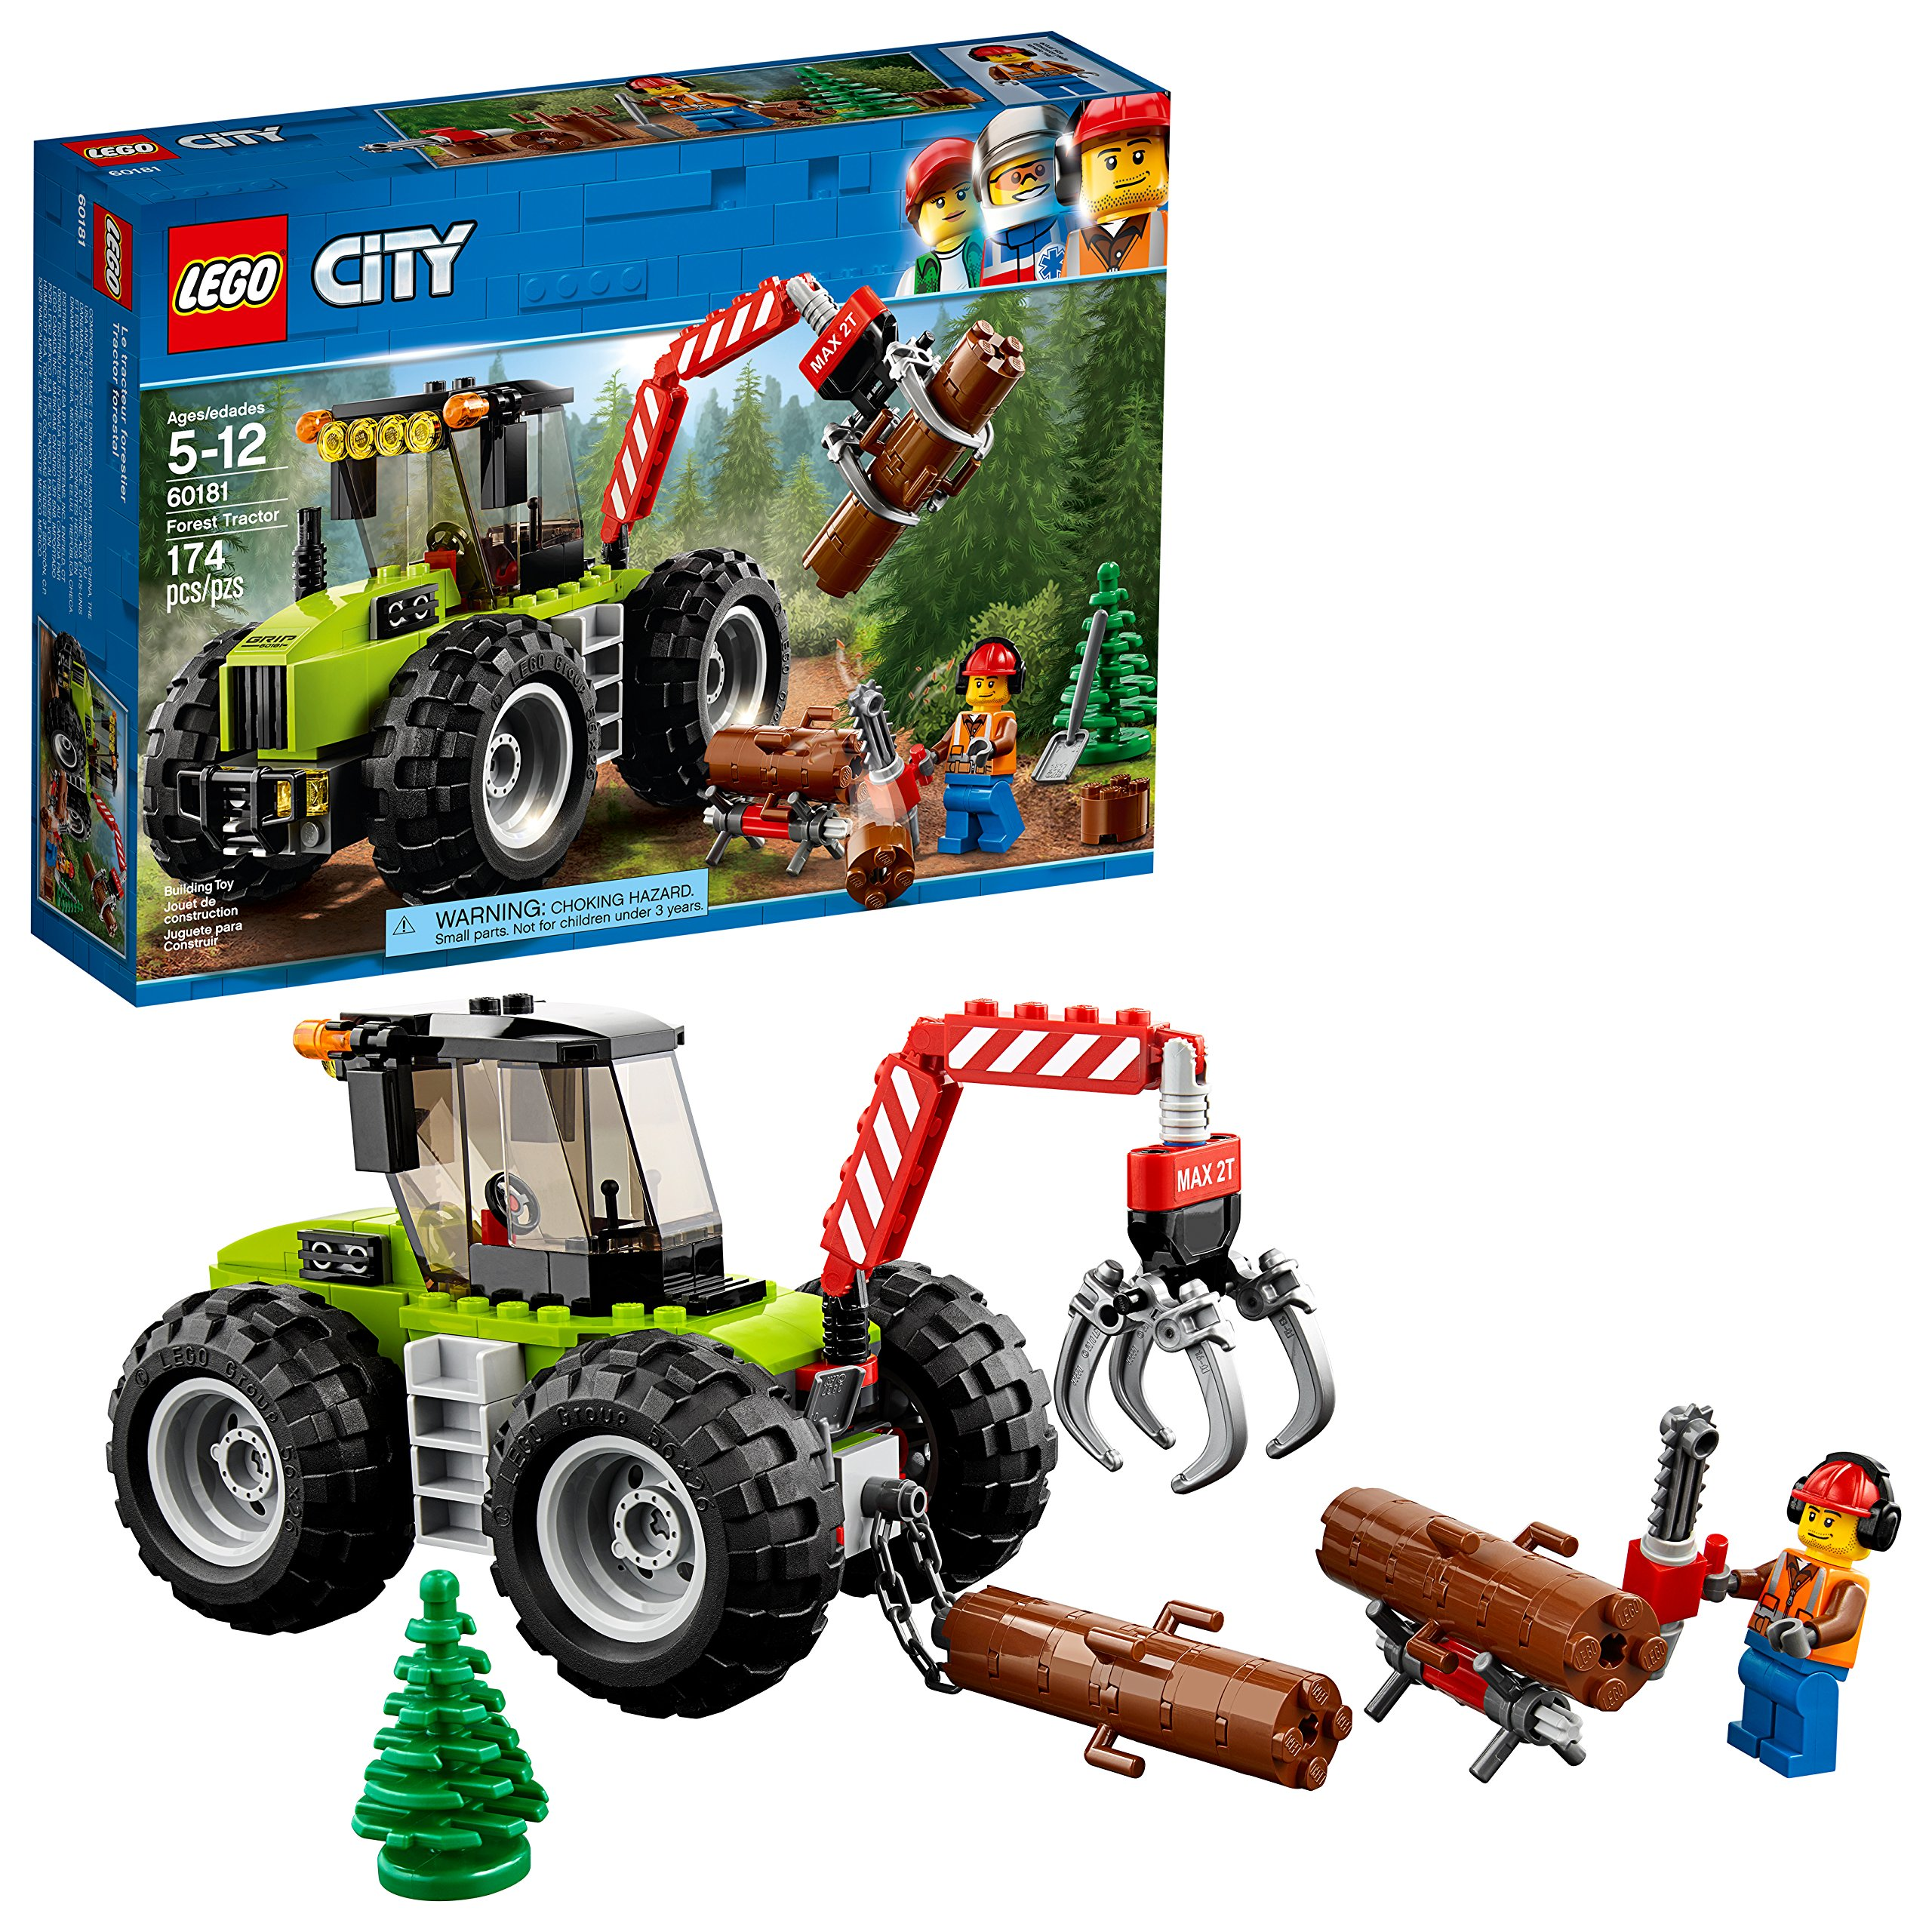 LEGO City Forest Tractor 60181 Building Kit (174 Pieces) by LEGO